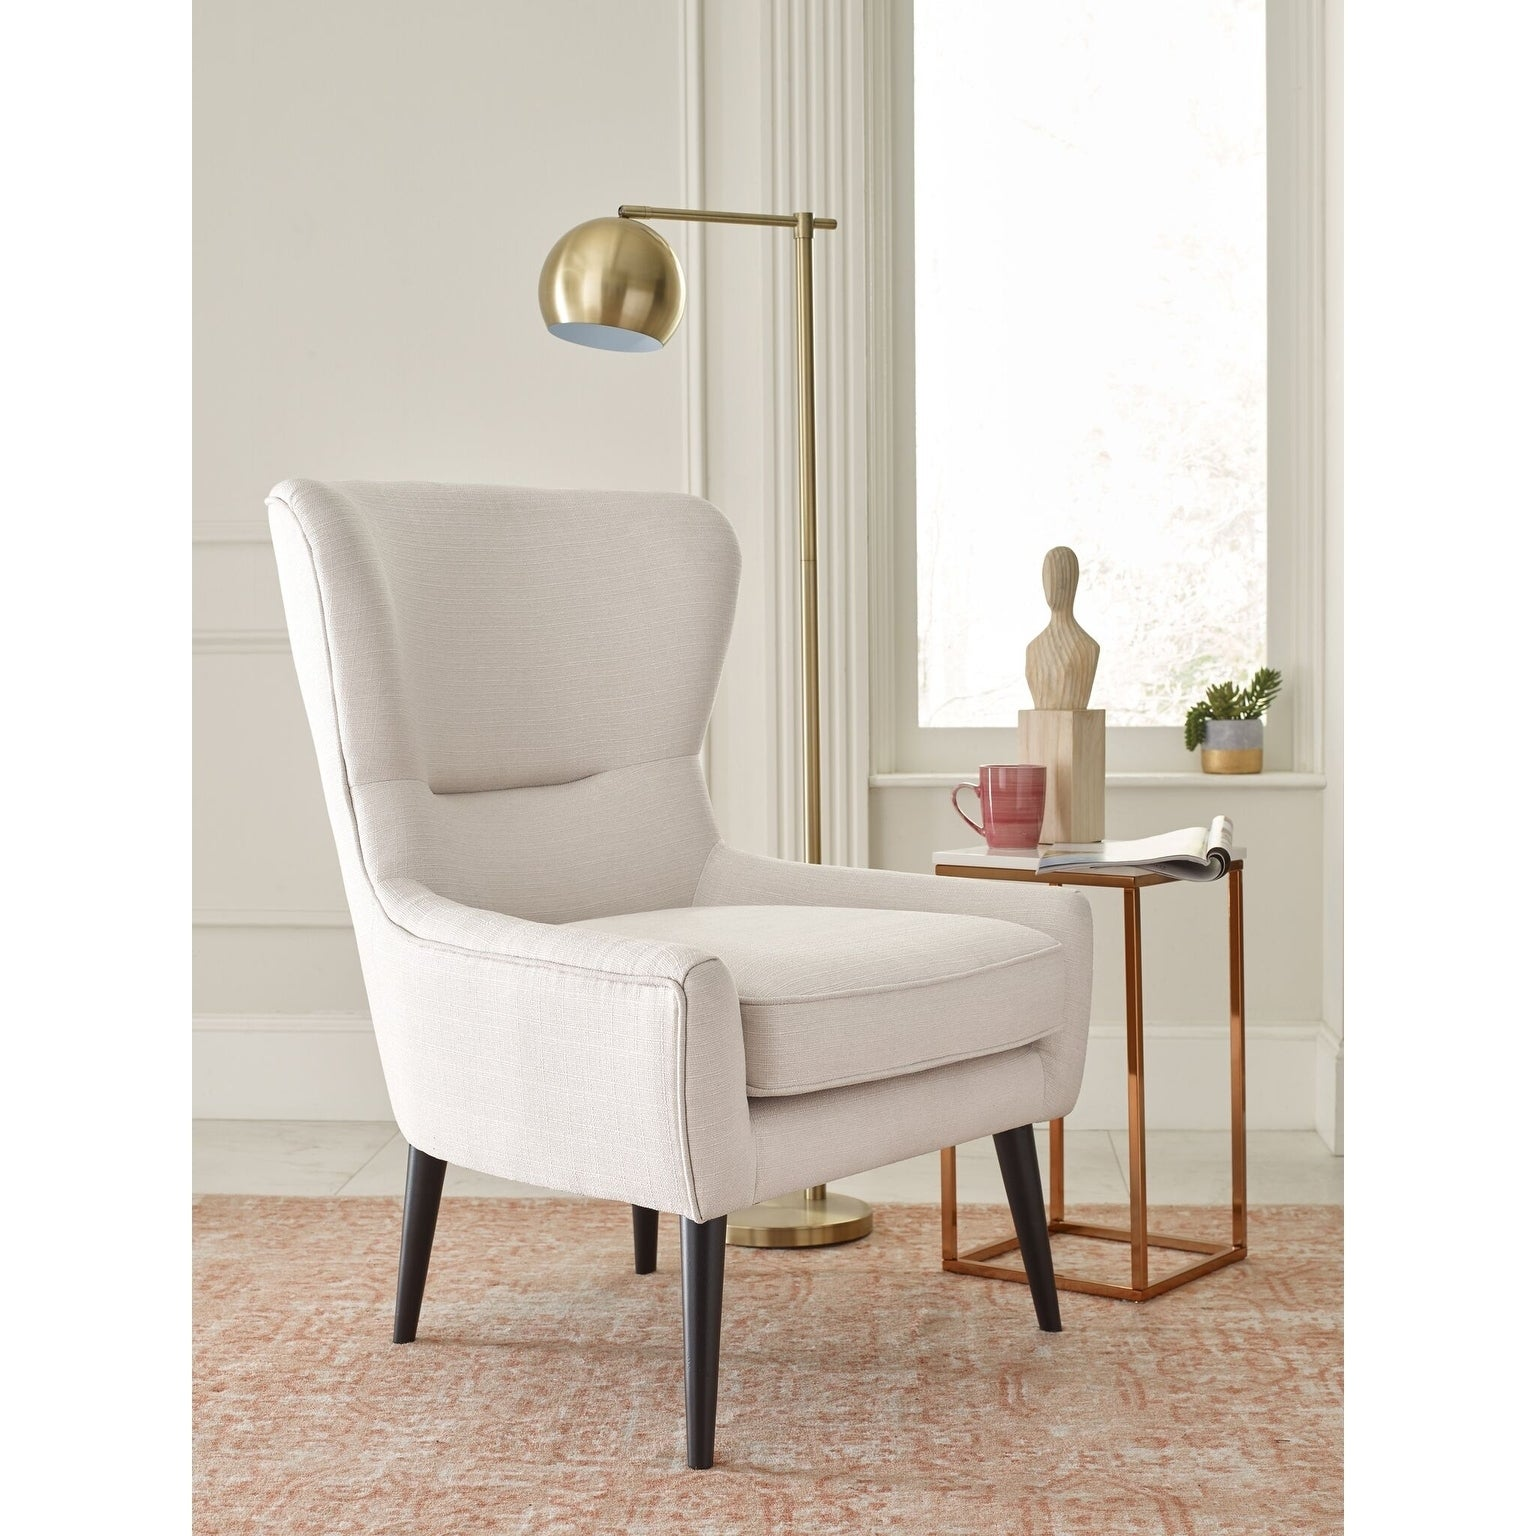 20 Reading Chairs That Will Help You Get Lost In Your Favourite Book reading chairs 20 Reading Chairs That Will Help You Get Lost In Your Favourite Book 20 Reading Chairs That Will Help You Get Lost In Your Favourite Book 20 1